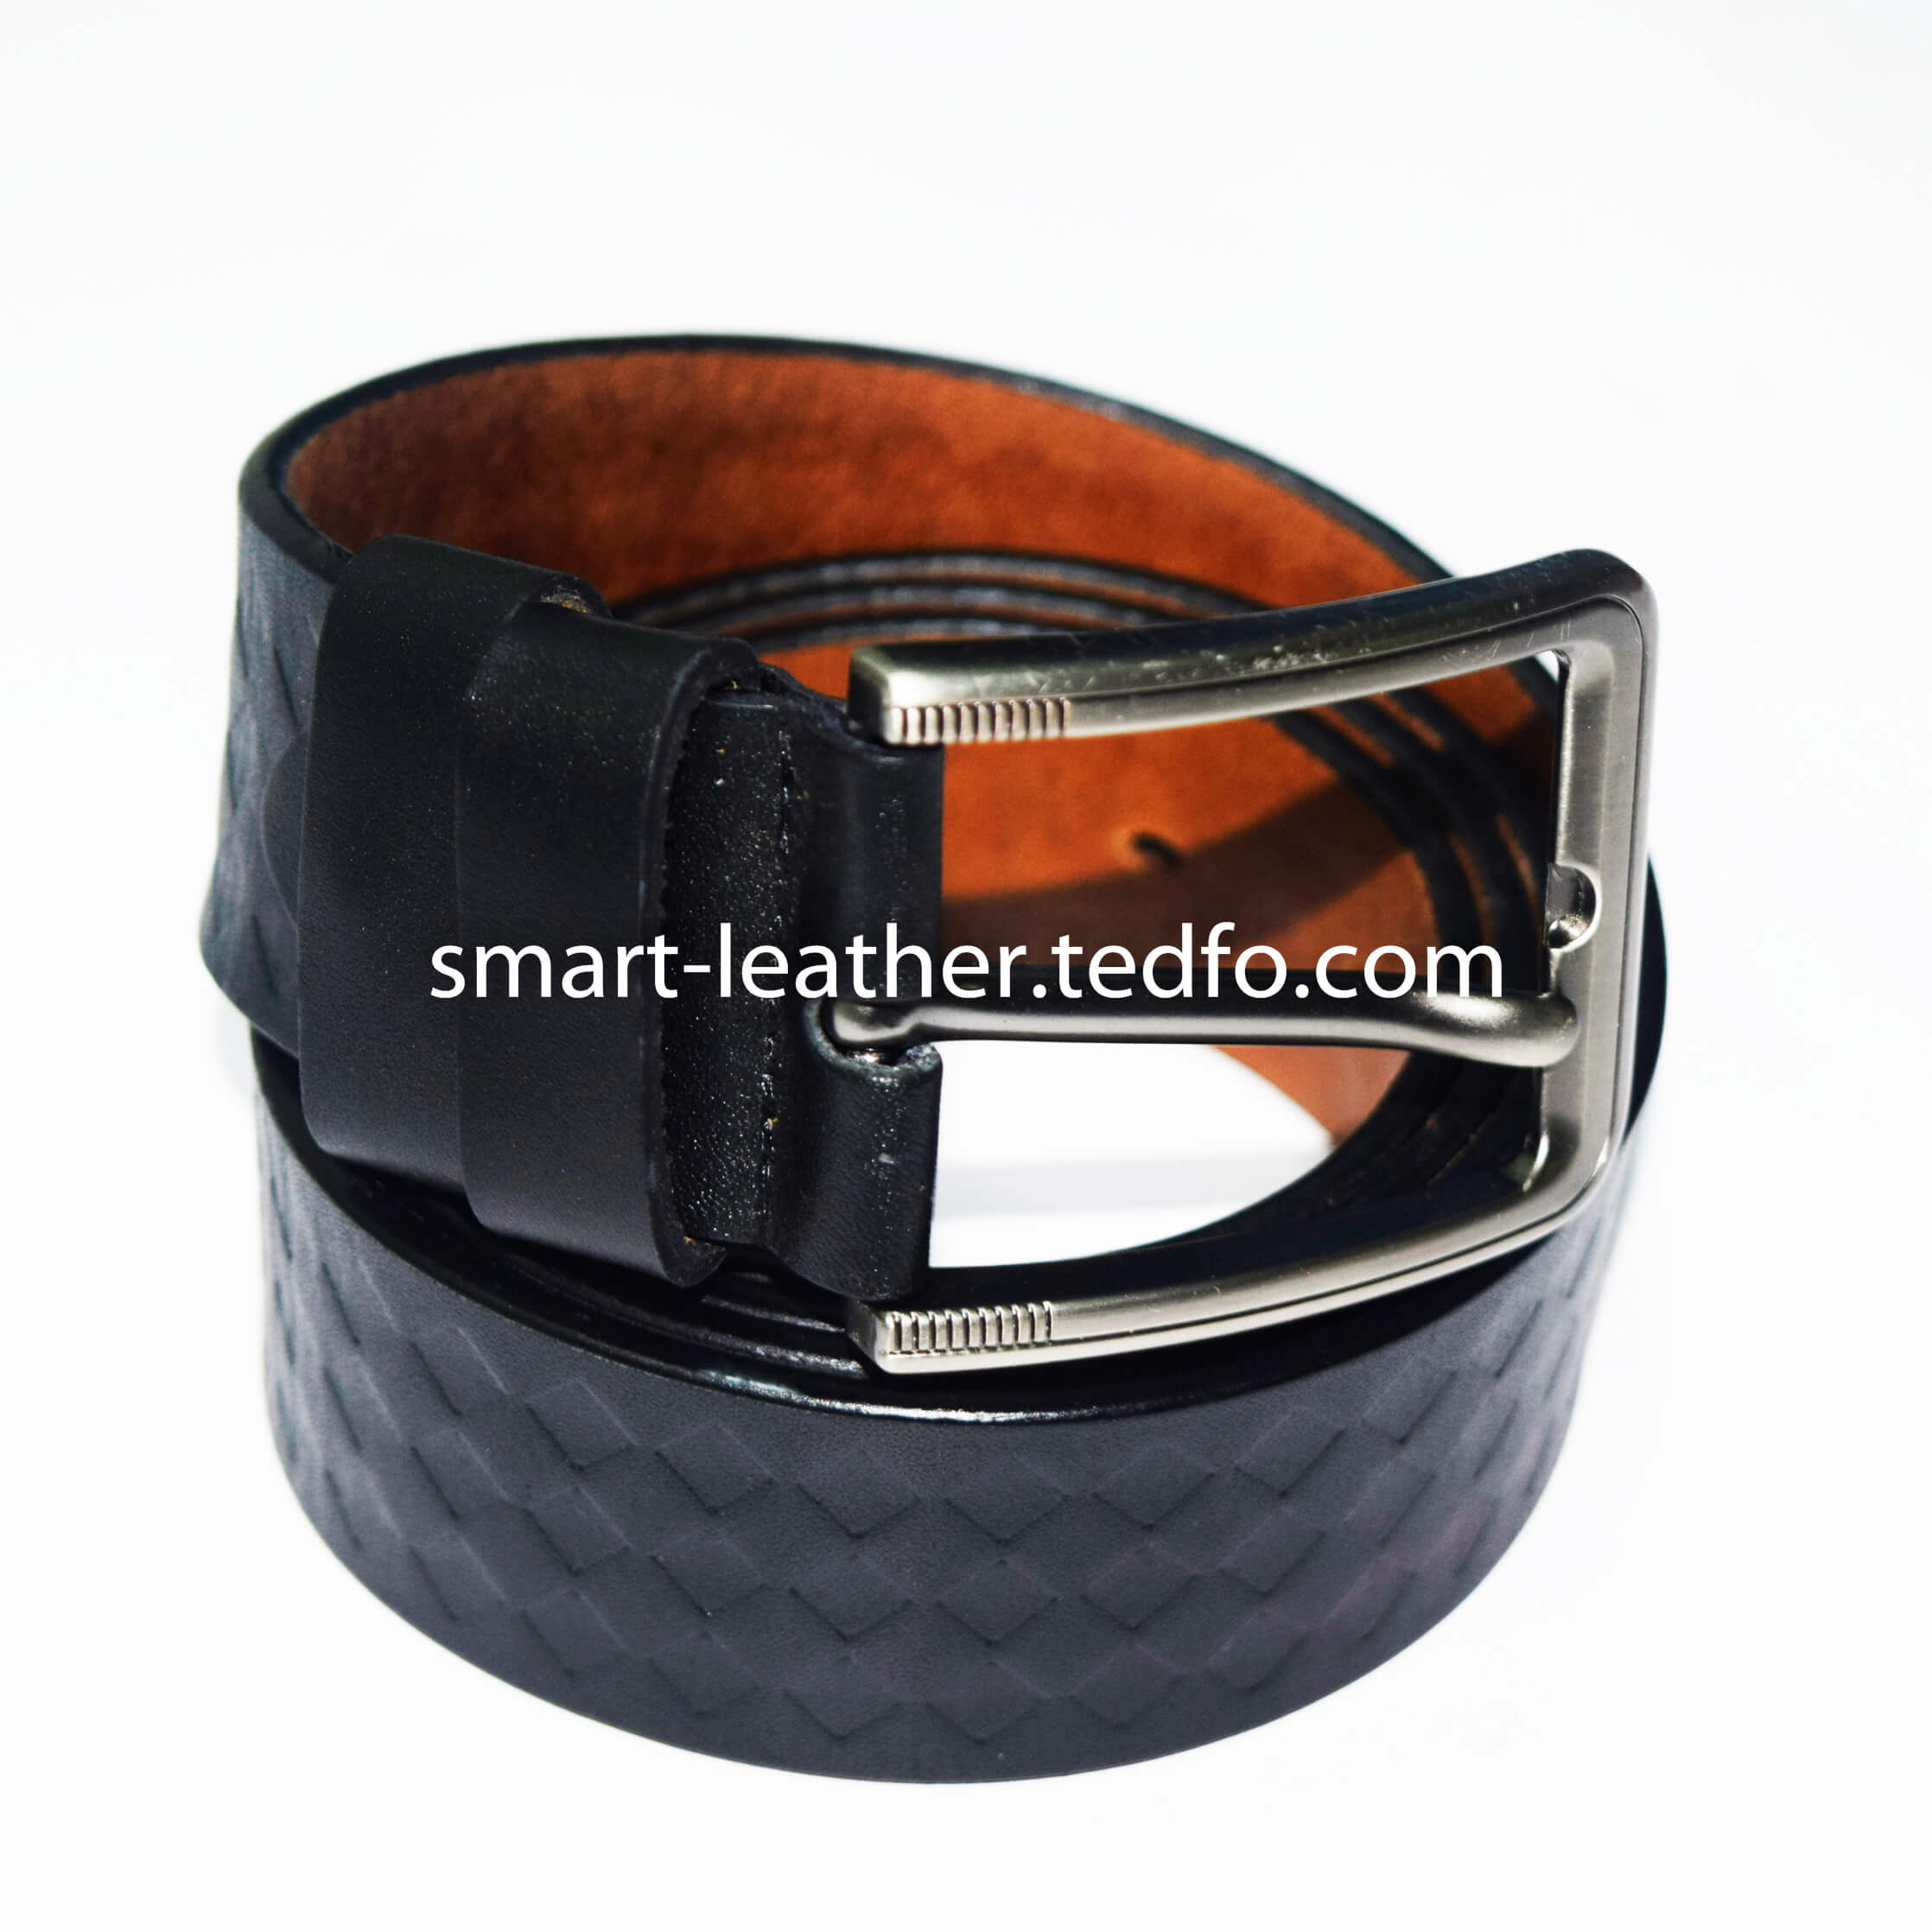 Leather stylish Belt Manufacturer Supplier and Exporter from Bangladesh